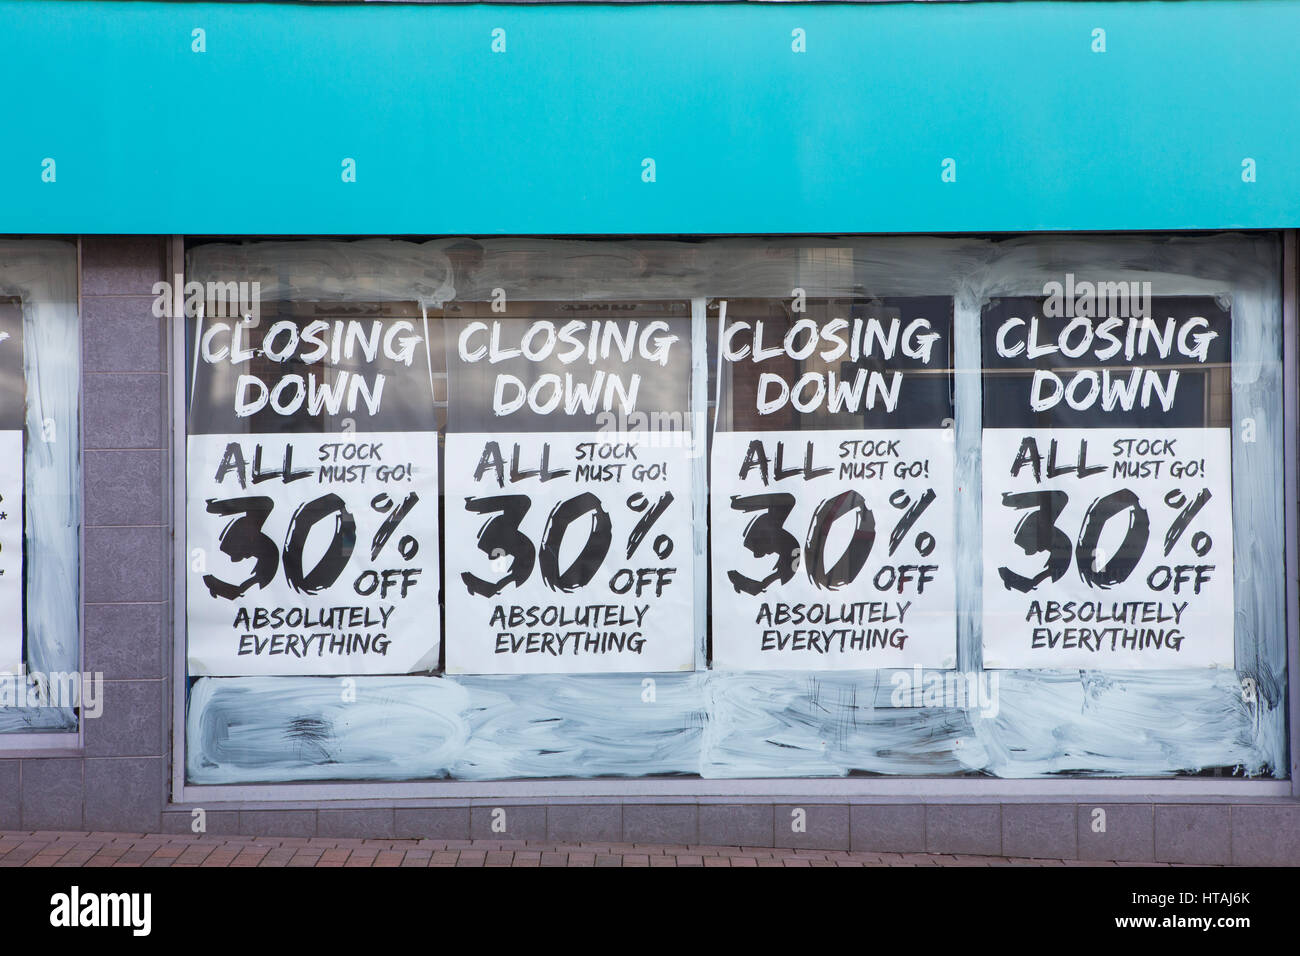 Exterior Of Shop With Closing Down Notice In Window - Stock Image